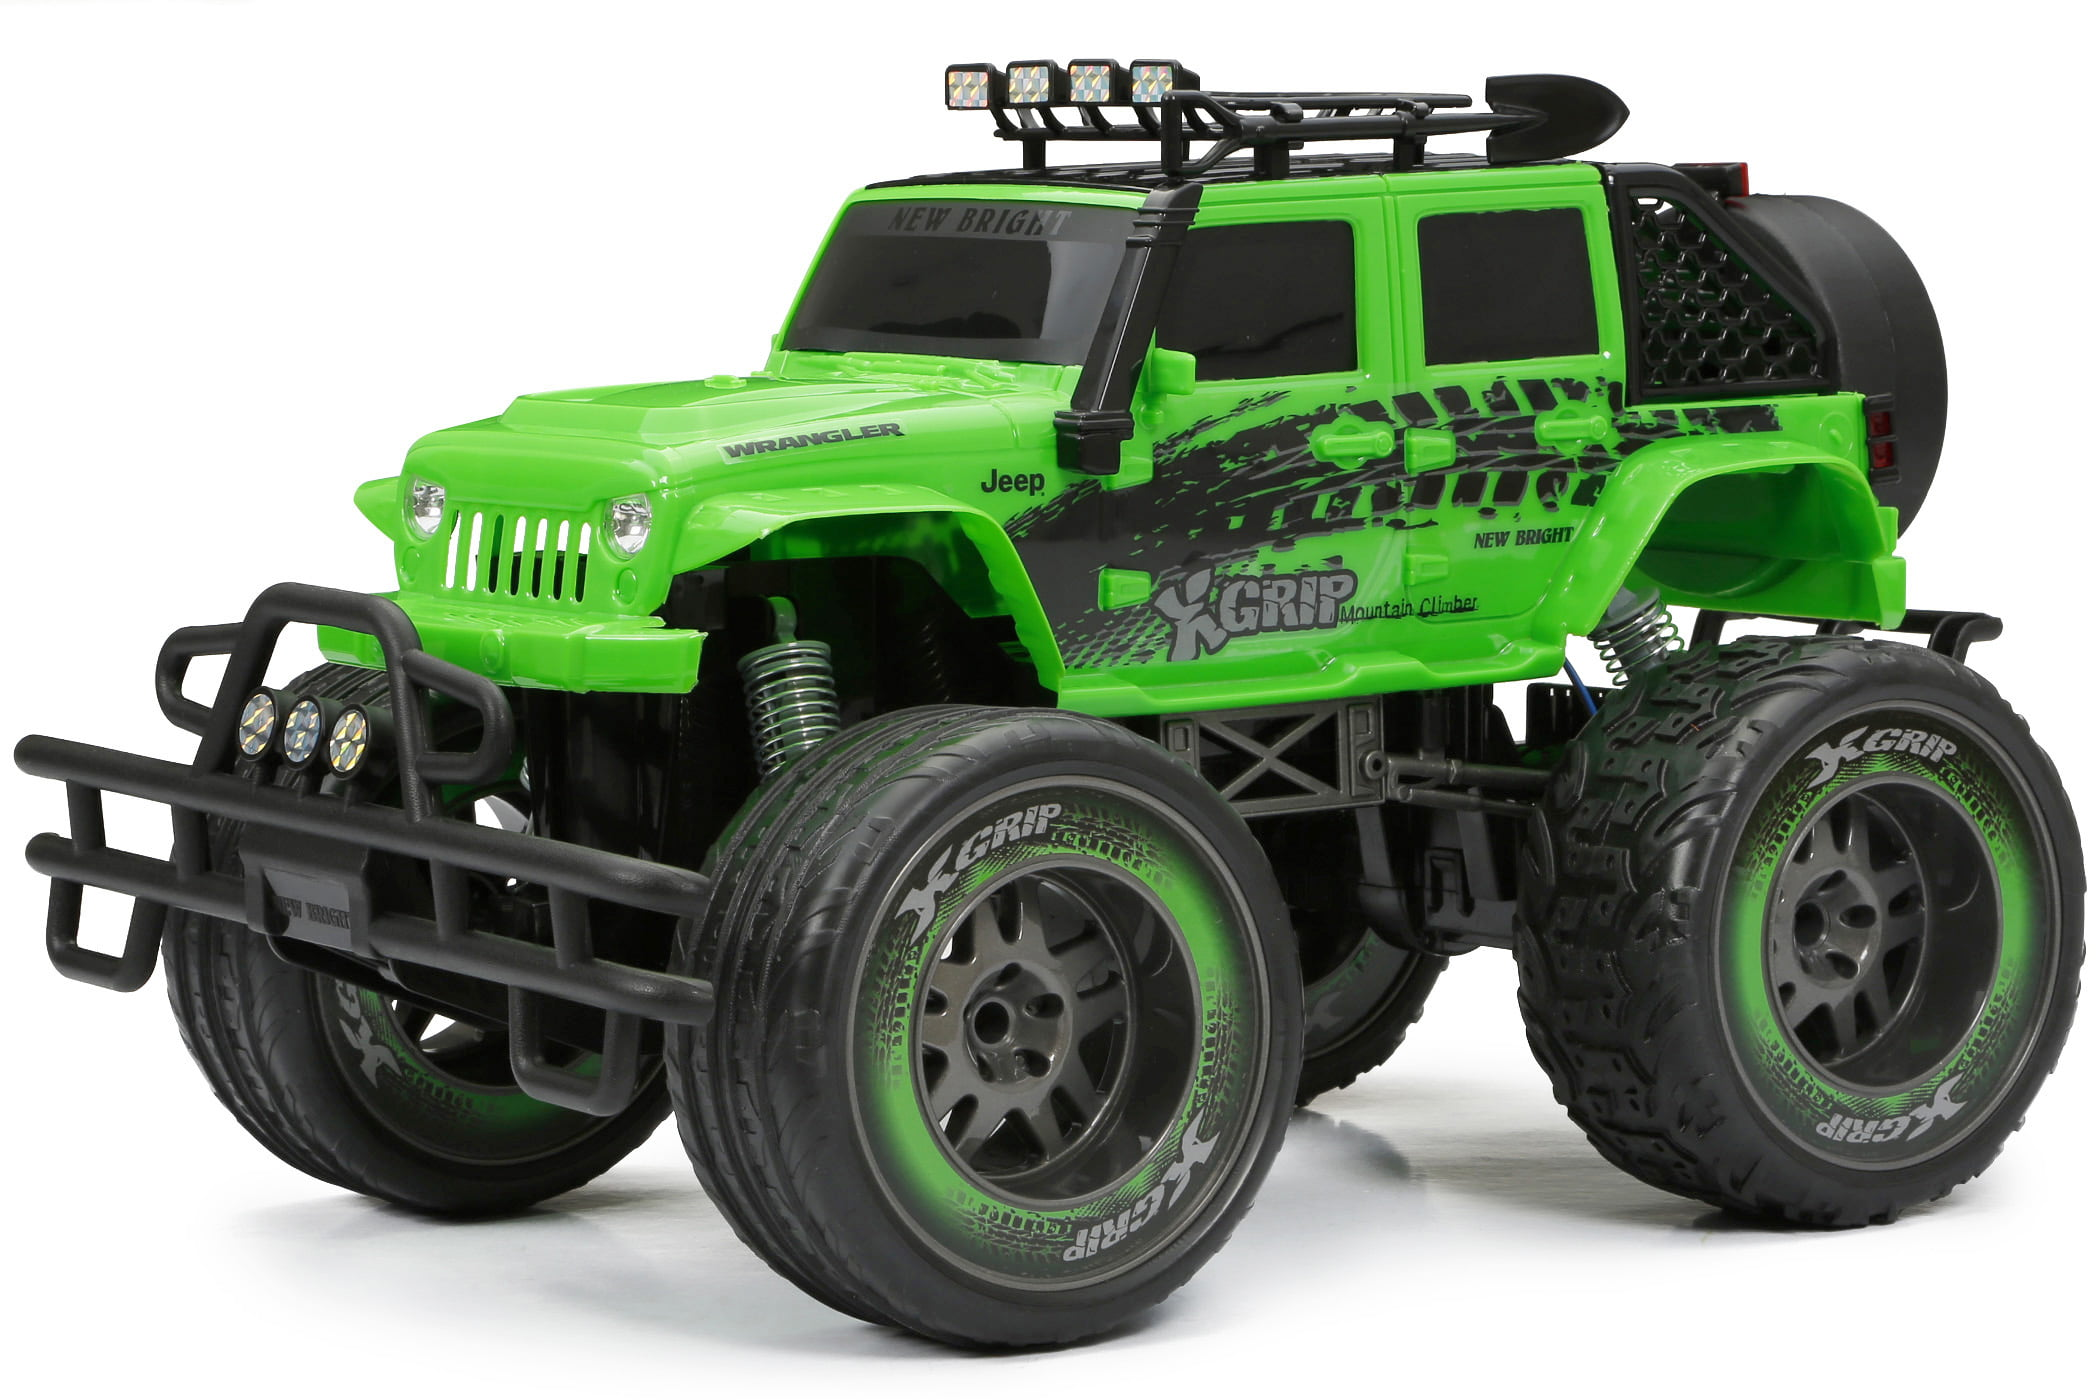 New Bright 1:10 RC 2.4GHz Radio Control 9.6V Jeep Green by New Bright